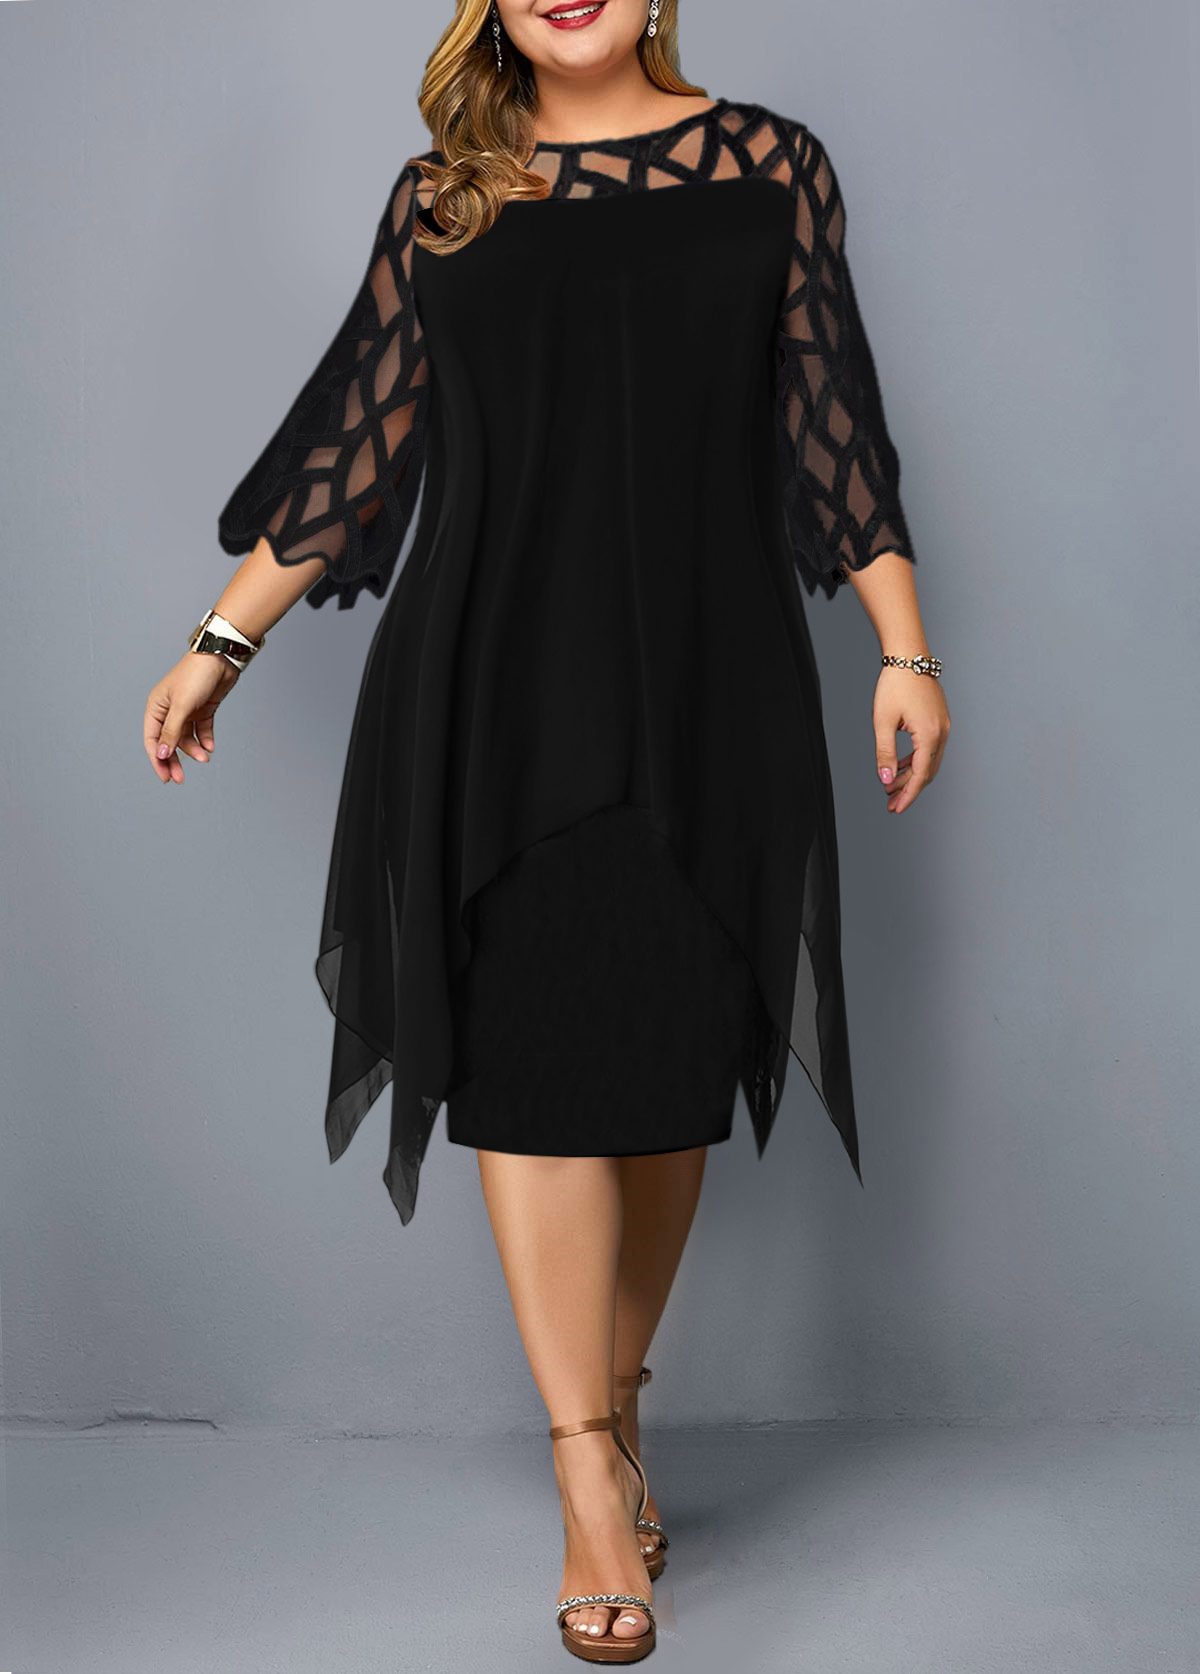 Mesh Panel Round Neck Layered Plus Size Ombre Dress